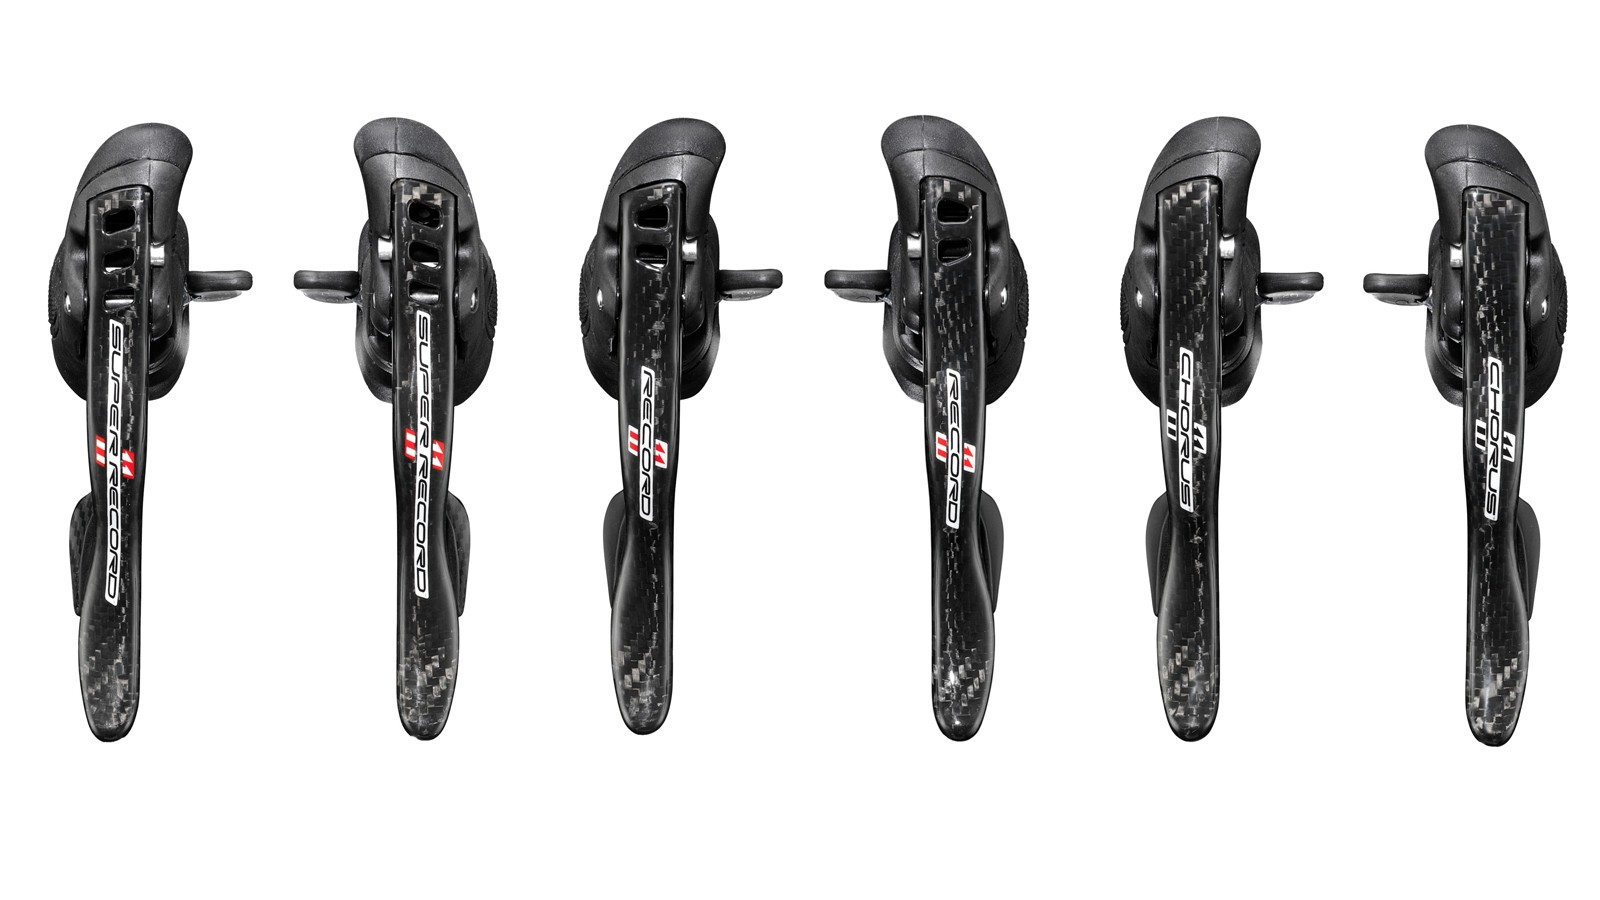 The 2015 Campagnolo ErgoPower levers get a subtle reworking of the trim settings plus a new hood design